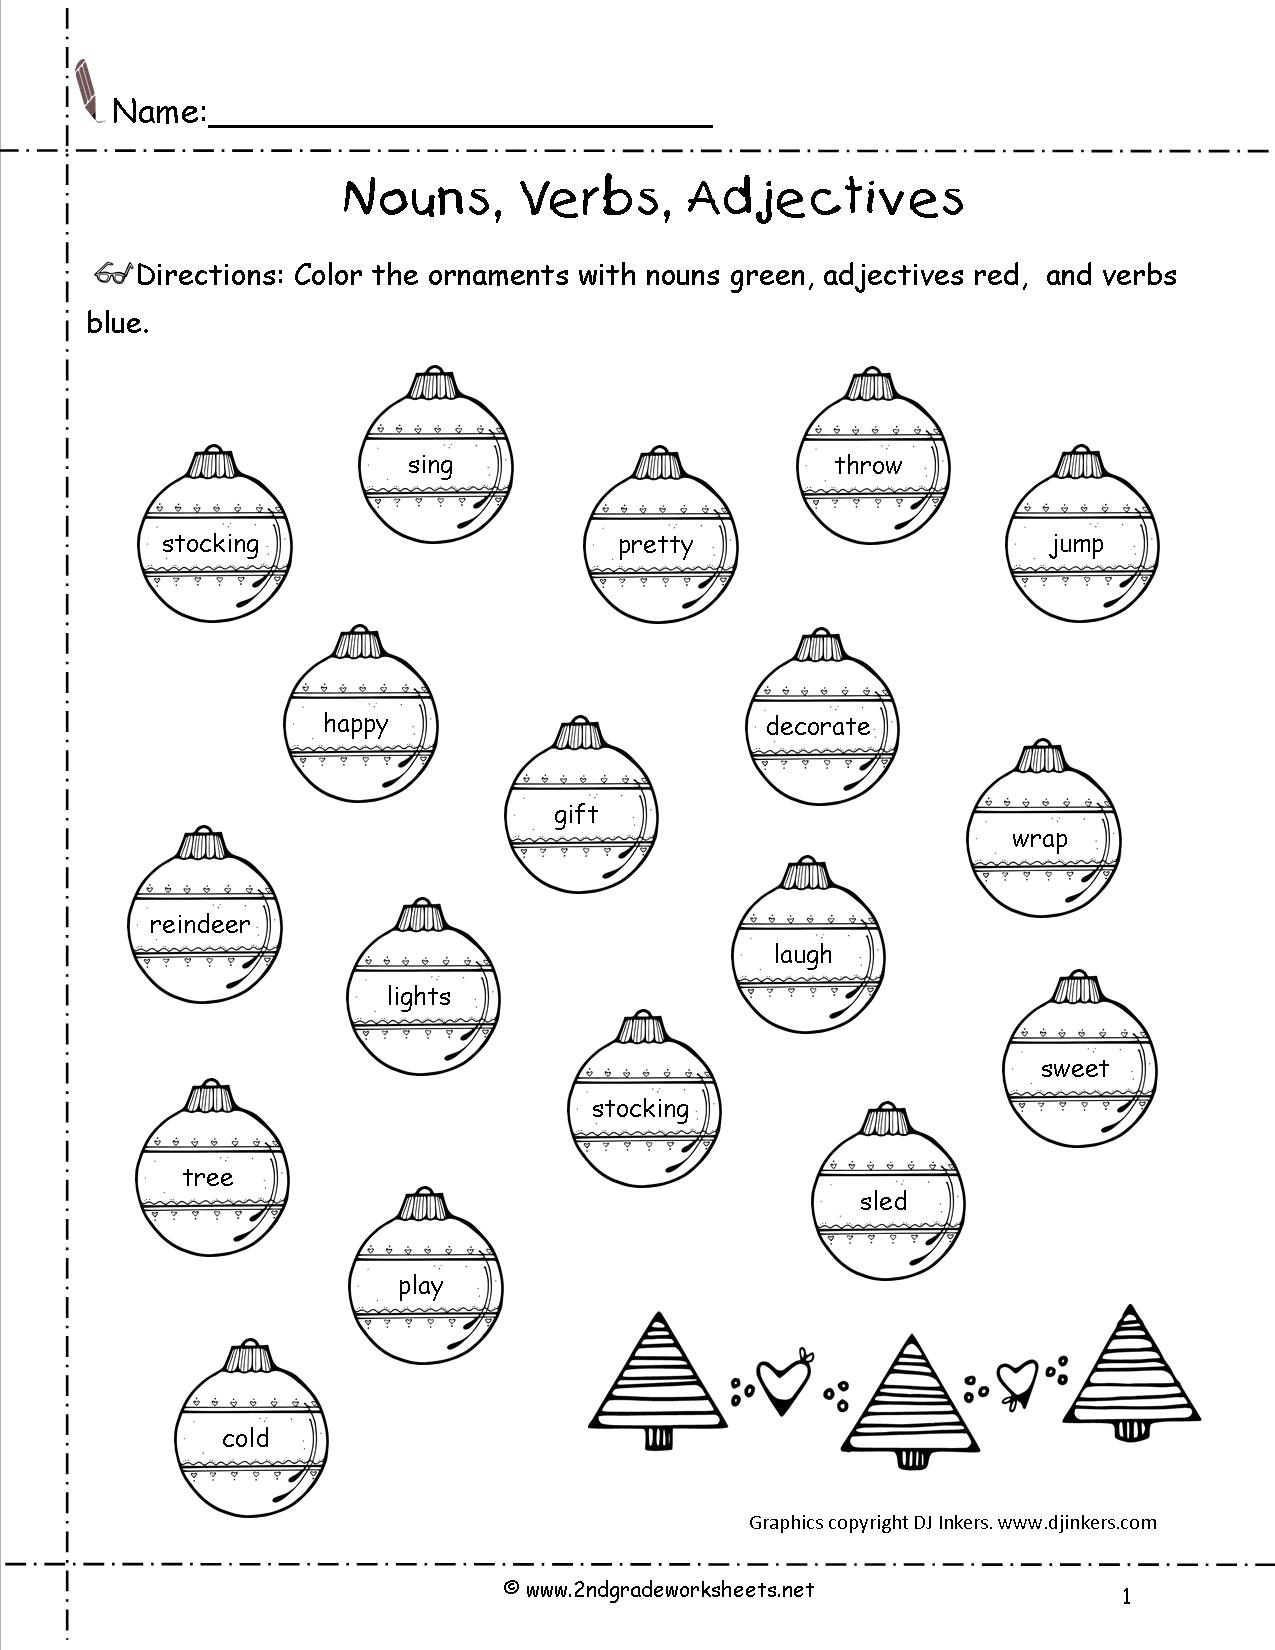 Christmas Worksheets And Printouts | Christmas Worksheets Printables